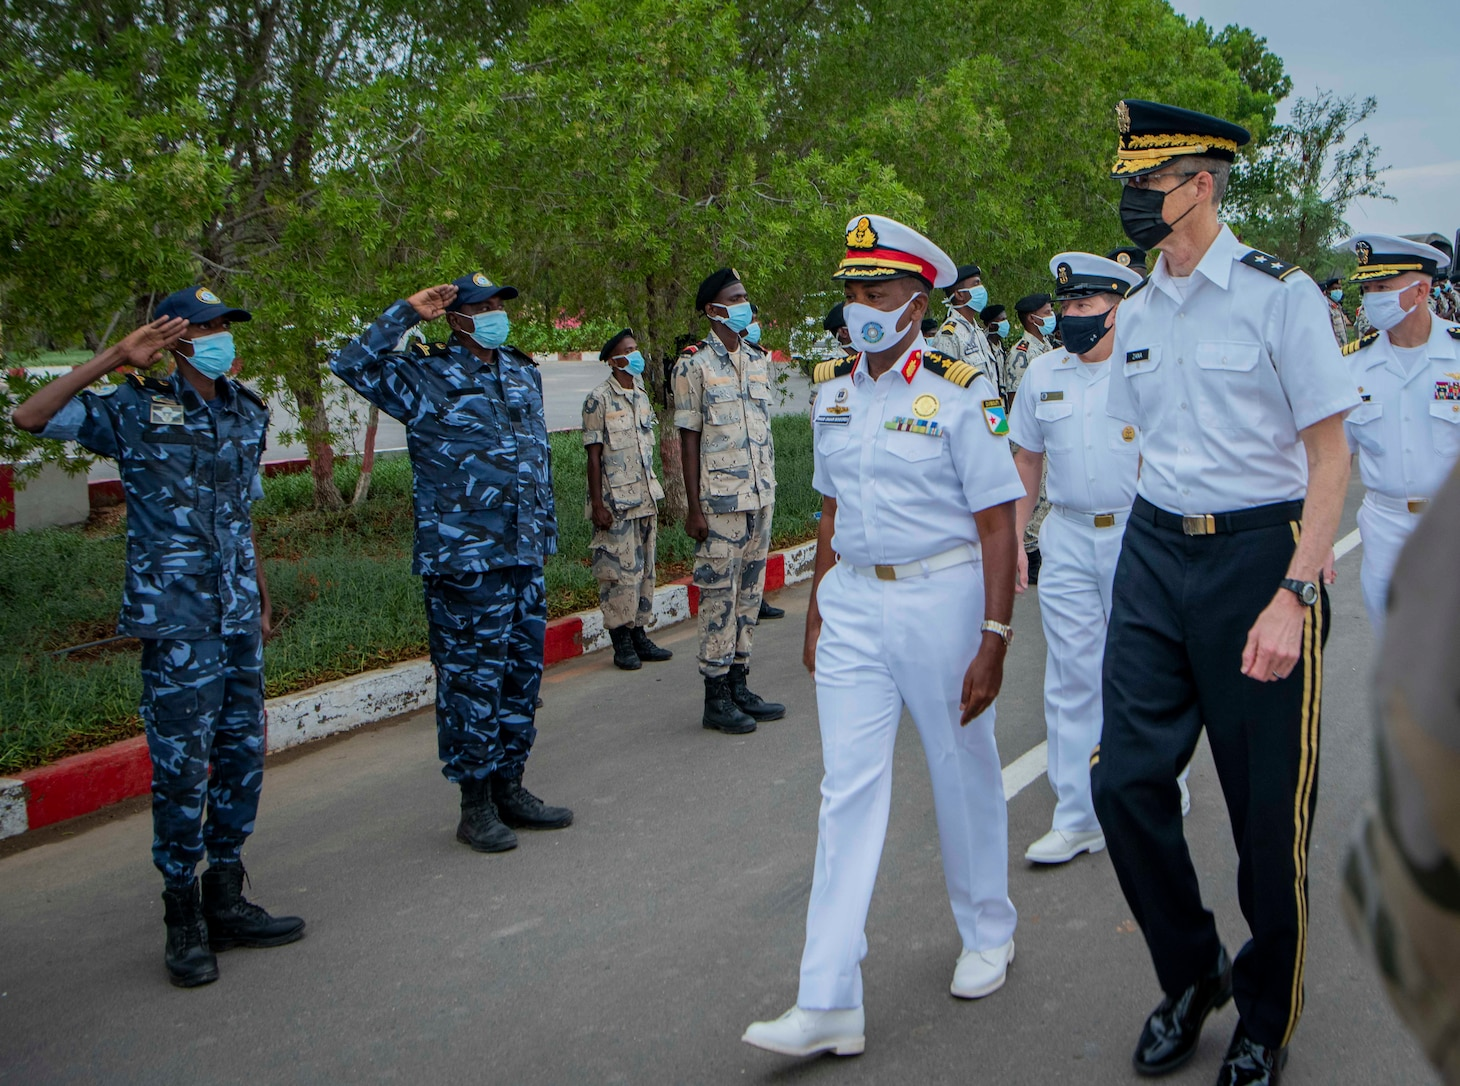 (July 25, 2021) Col. Ahmed Daher Djama, Djiboutian navy, center, walks with Gen. William Zana, Combined Joint Task Force-Horn of Africa commanding general, held at the Doraleh Coast Guard training center, in Djibouti, Djibouti, July 25, 2021, after the opening ceremony of exercise Cutlass Express 2021. Cutlass Express is designed to improve regional cooperation, maritime domain awareness and information sharing practices to increase capabilities between the U.S., East African and Western Indian Ocean nations to counter illicit maritime activity.